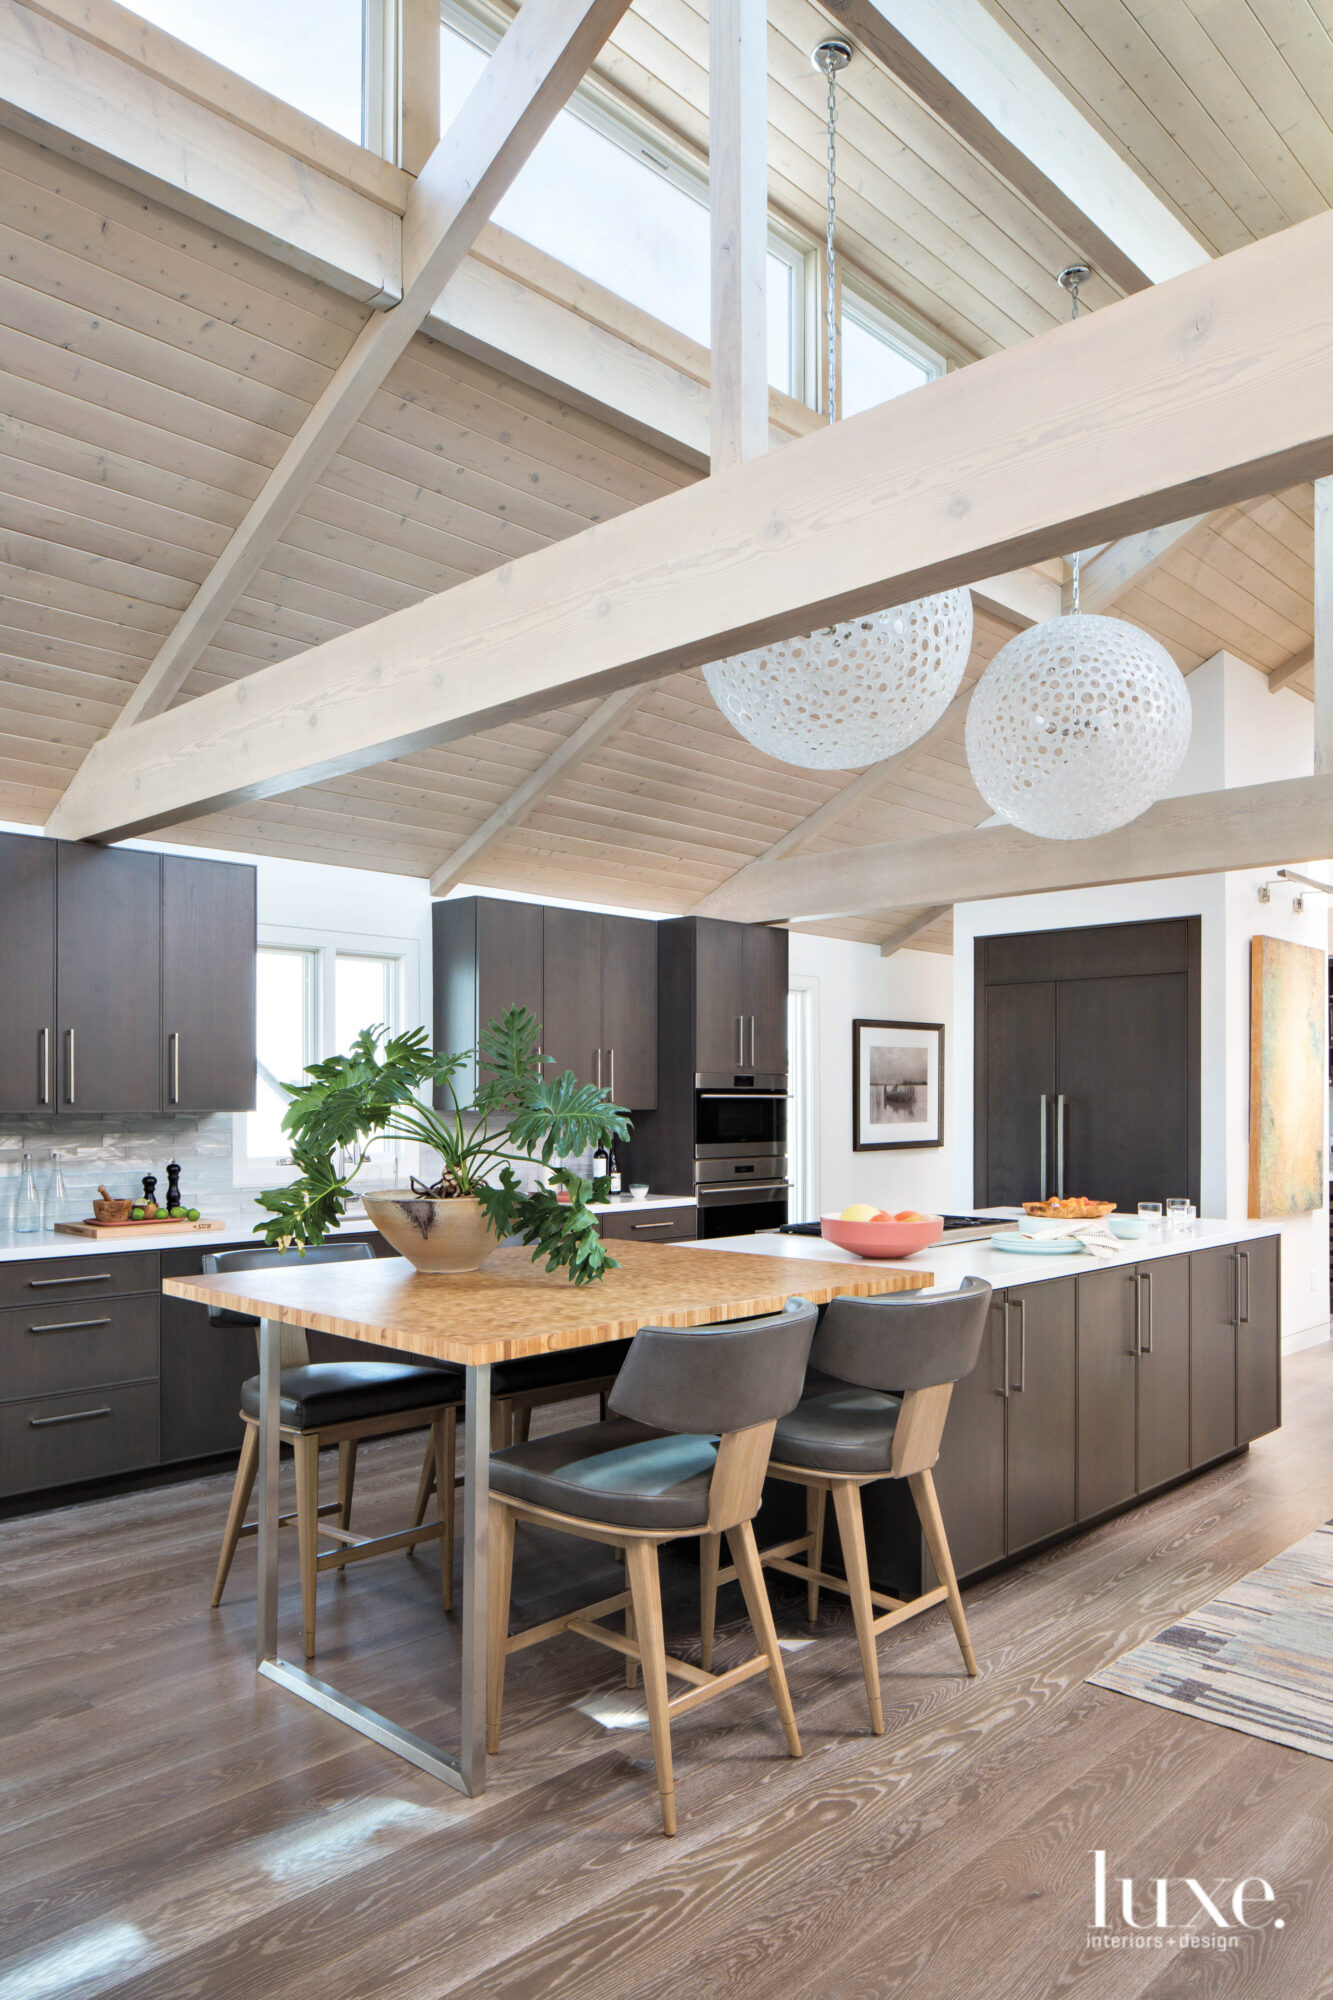 Shot of kitchen with round pendants above the island